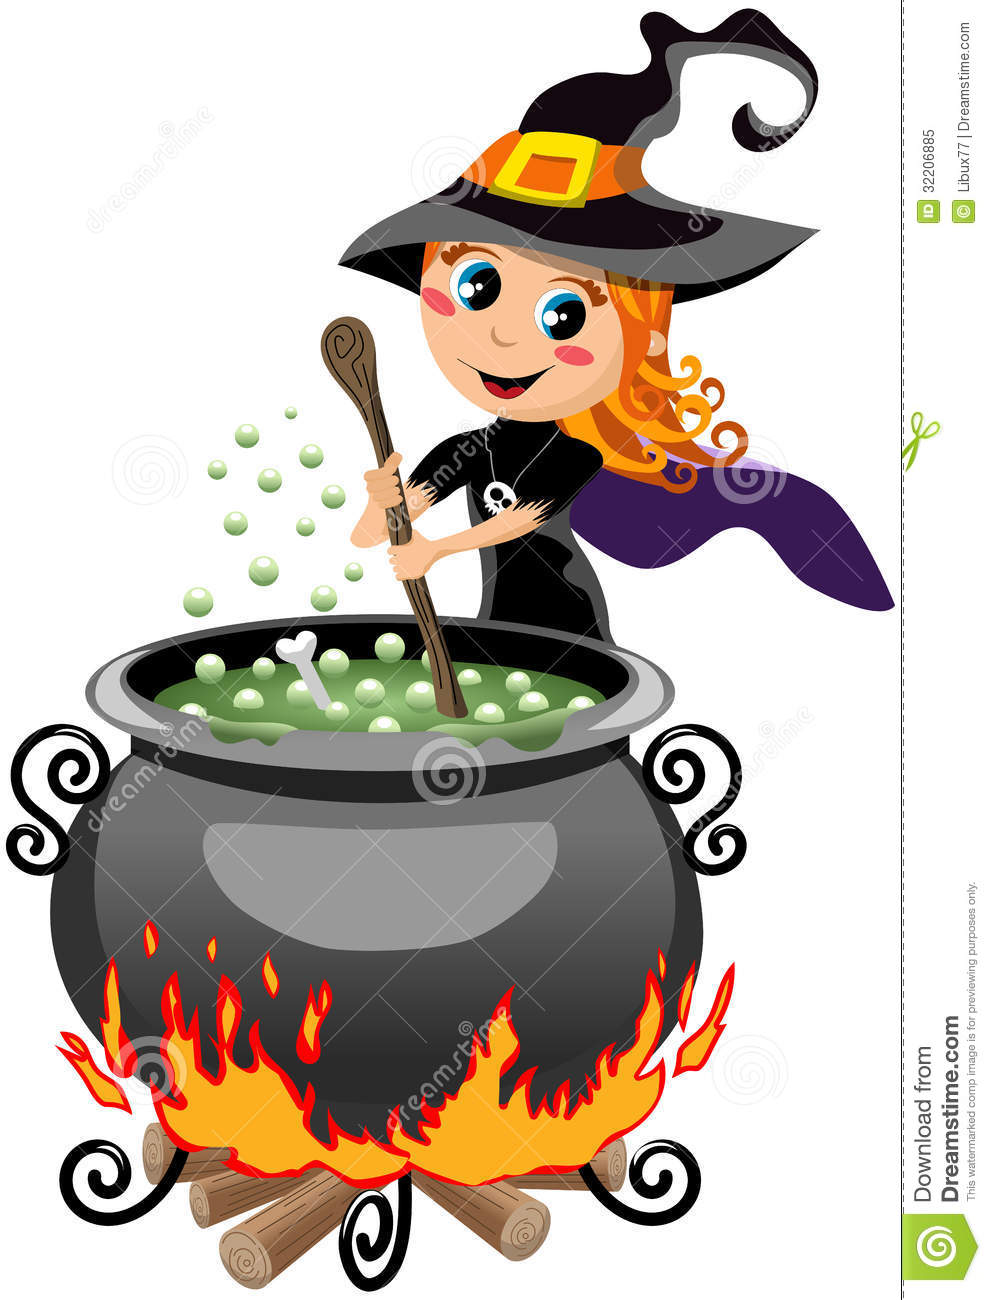 calderon cute halloween illustration isolated potion preparing white witch - Cute Halloween Witches